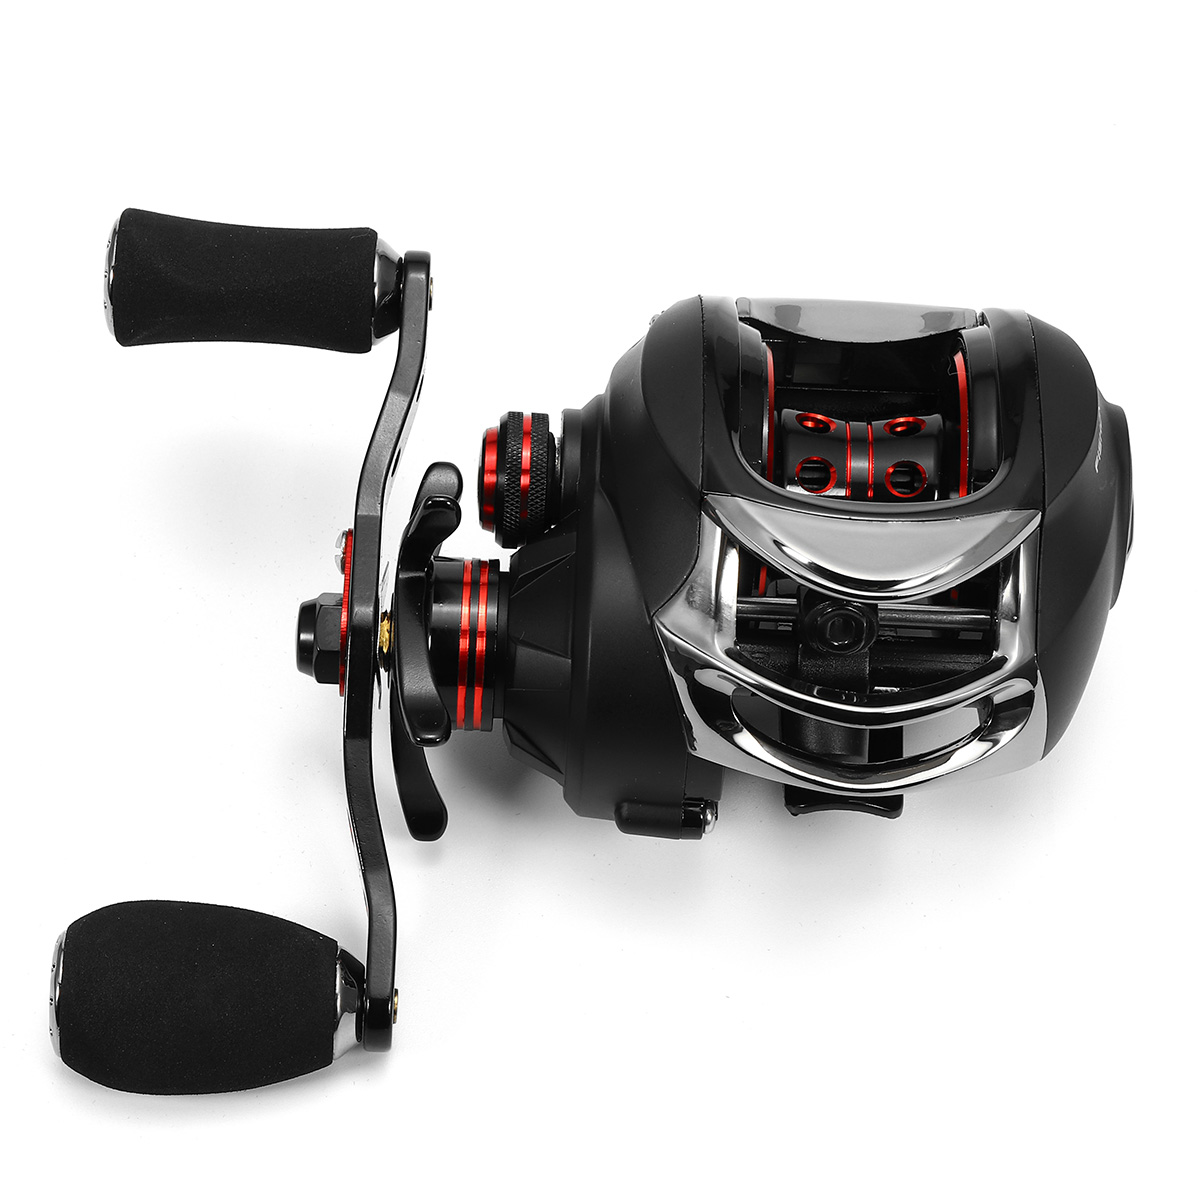 ZANLURE 17+1BB 7.0:1 Baicasting Fishing Reel Left Right